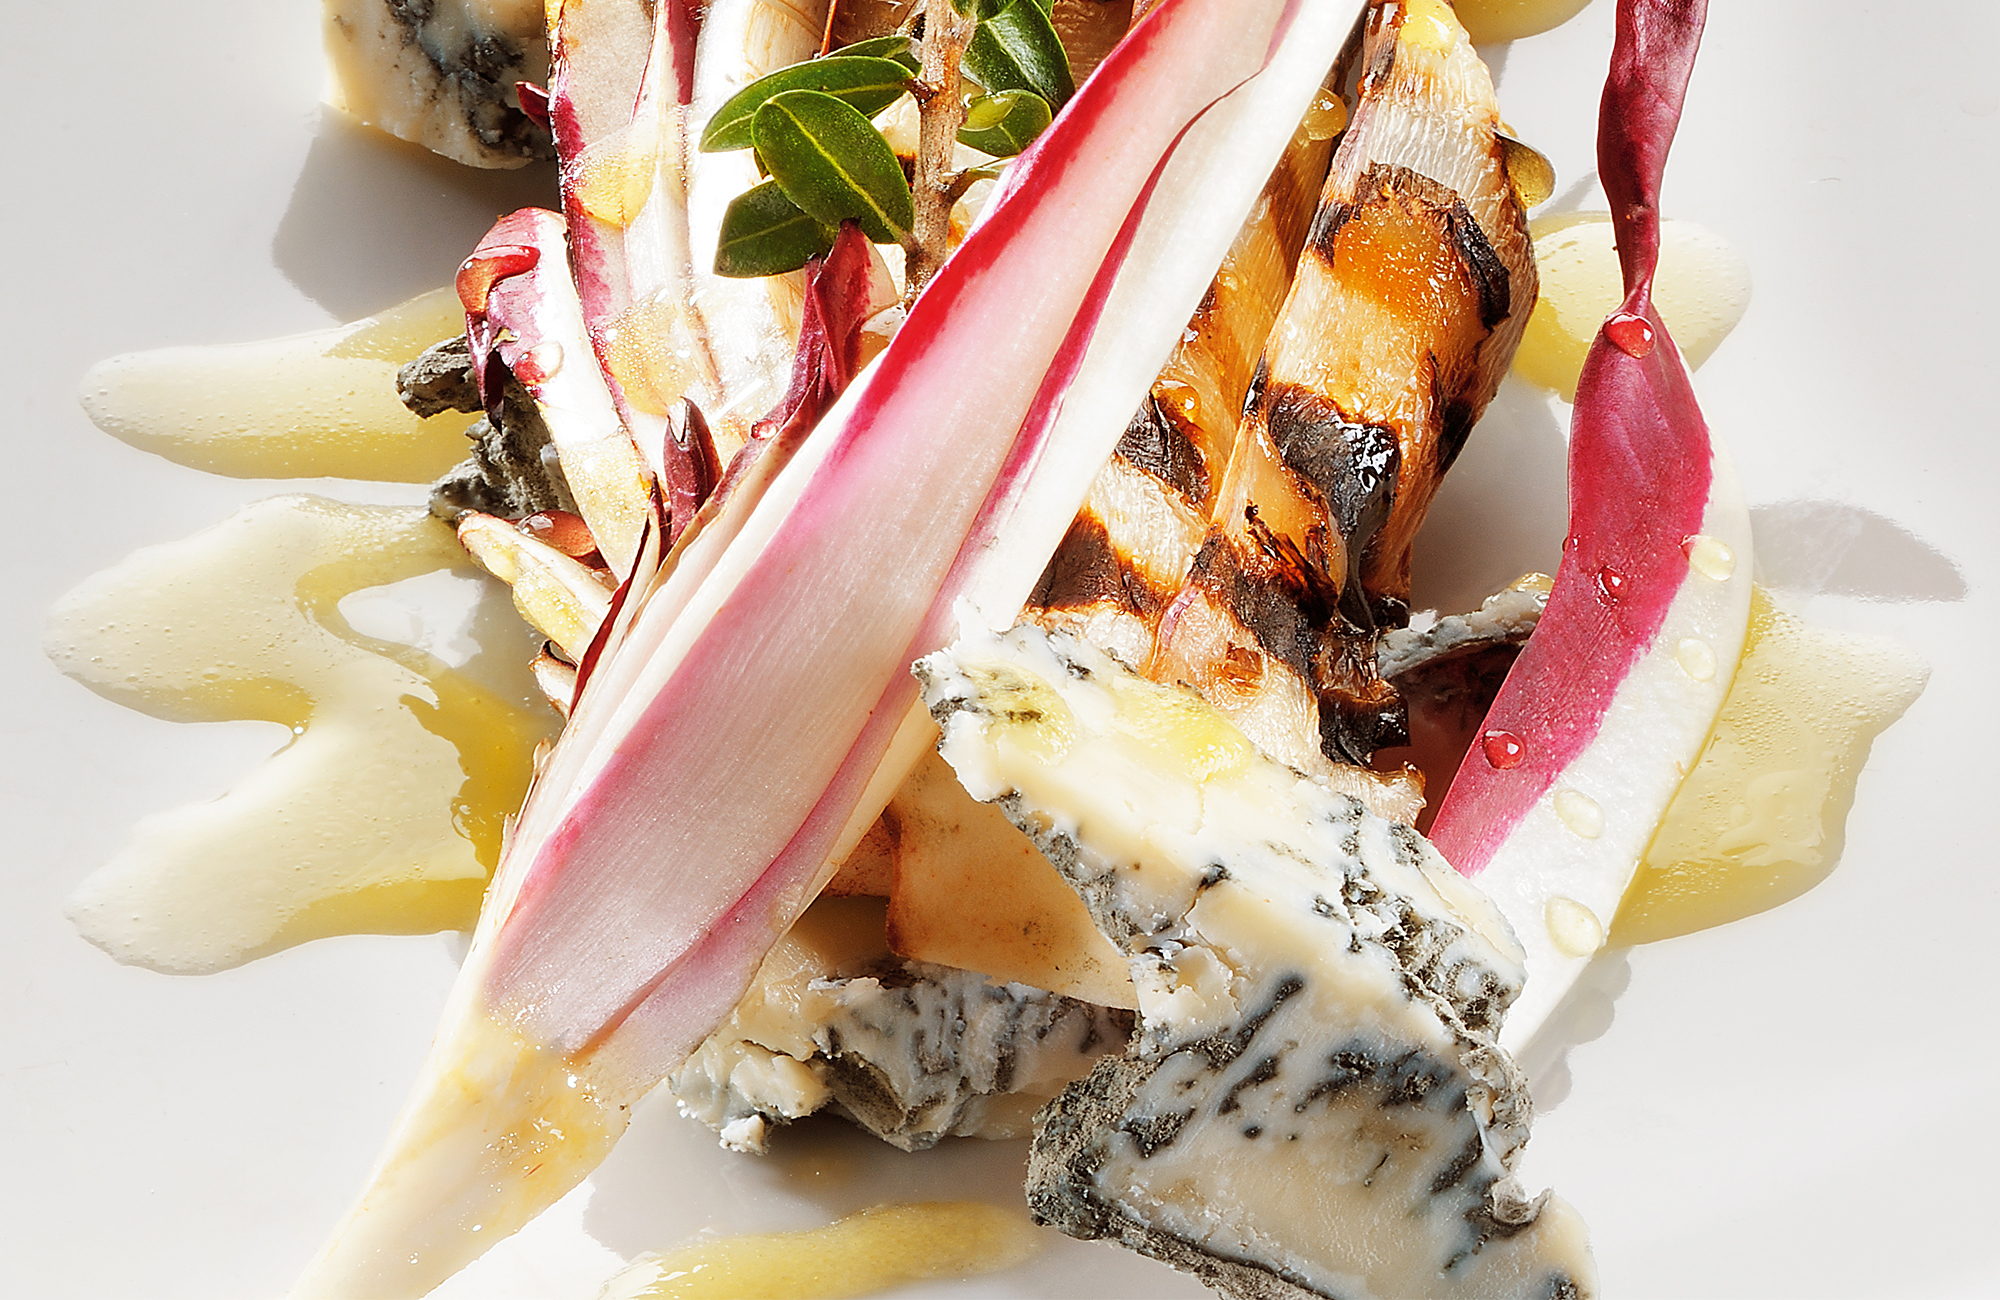 Gorgonzola cheese with grilled radicchio with vinaigrette based on DolceAgro Mild Condiment - Ponti